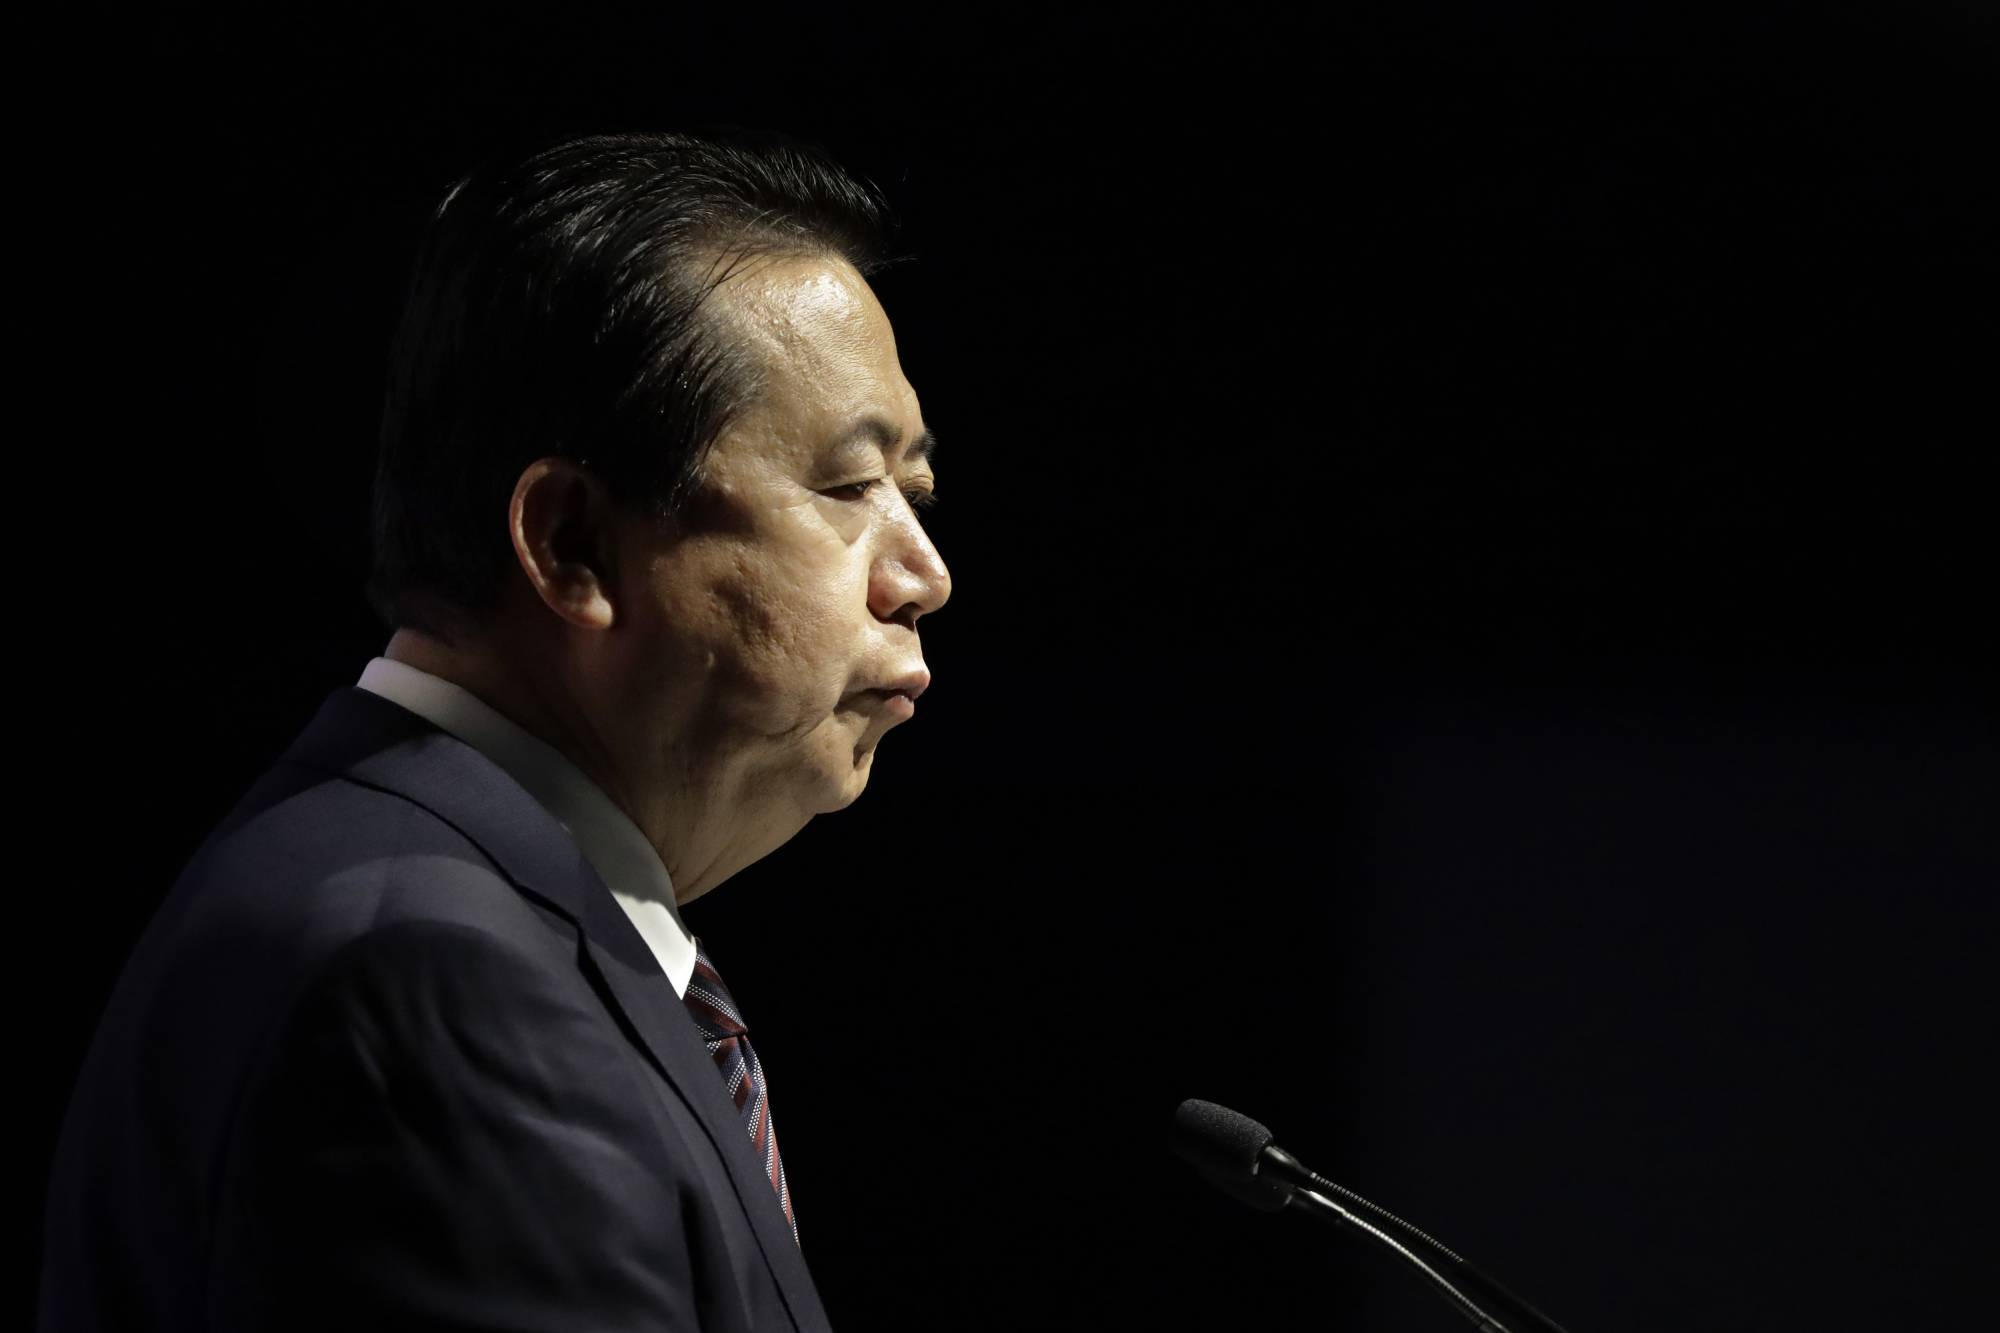 Head of Interpol, Meng Hongwei, missing after China trip